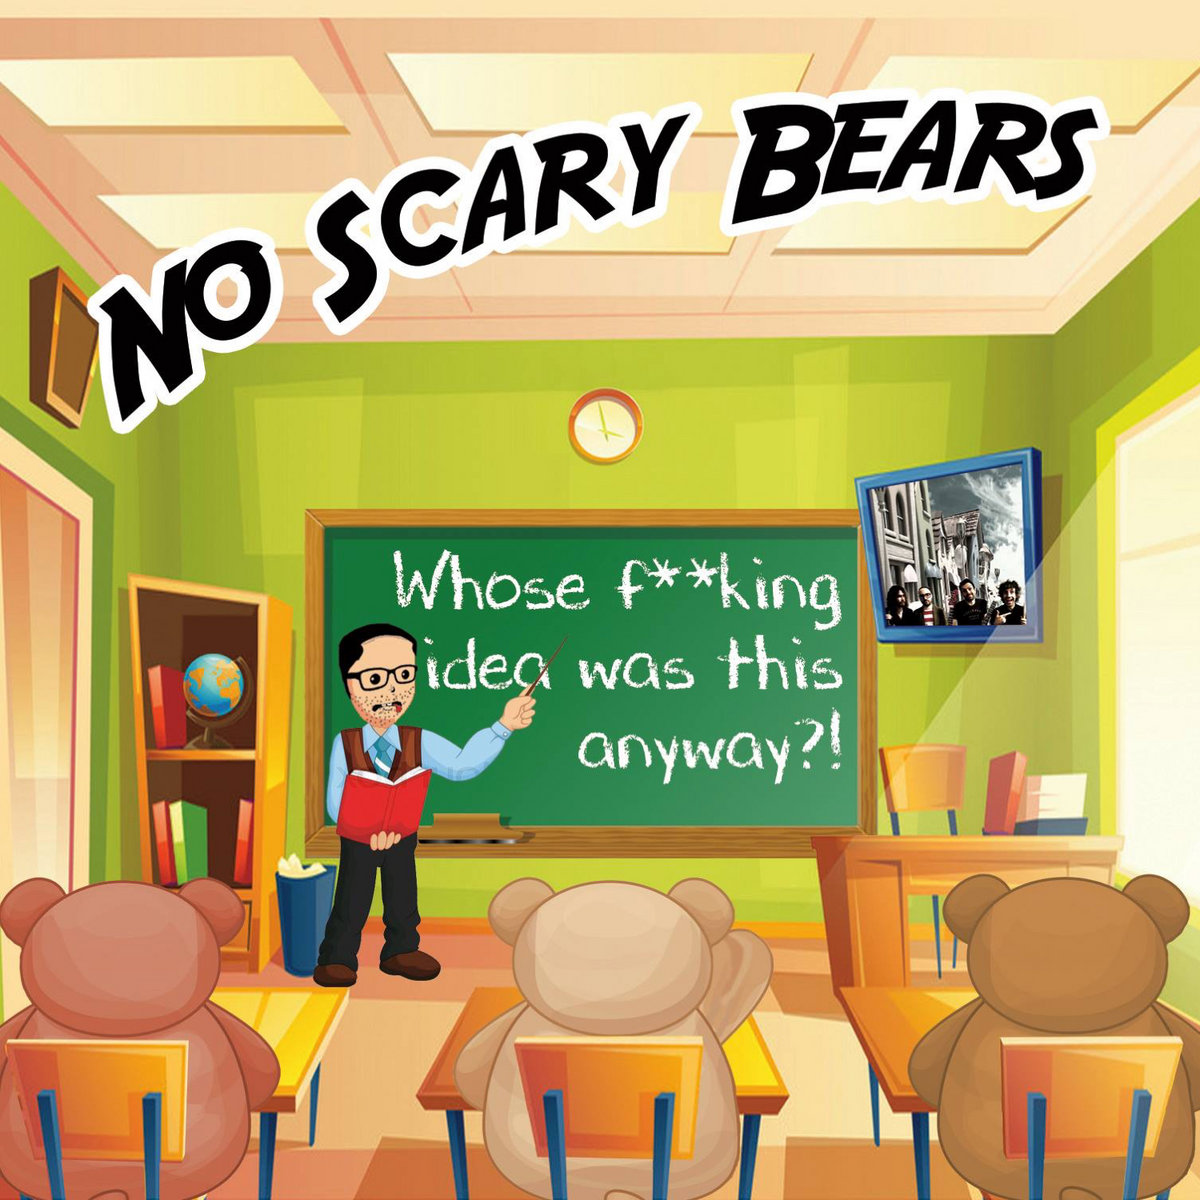 Whose F**king Idea Was This Anyway?! | No Scary Bears